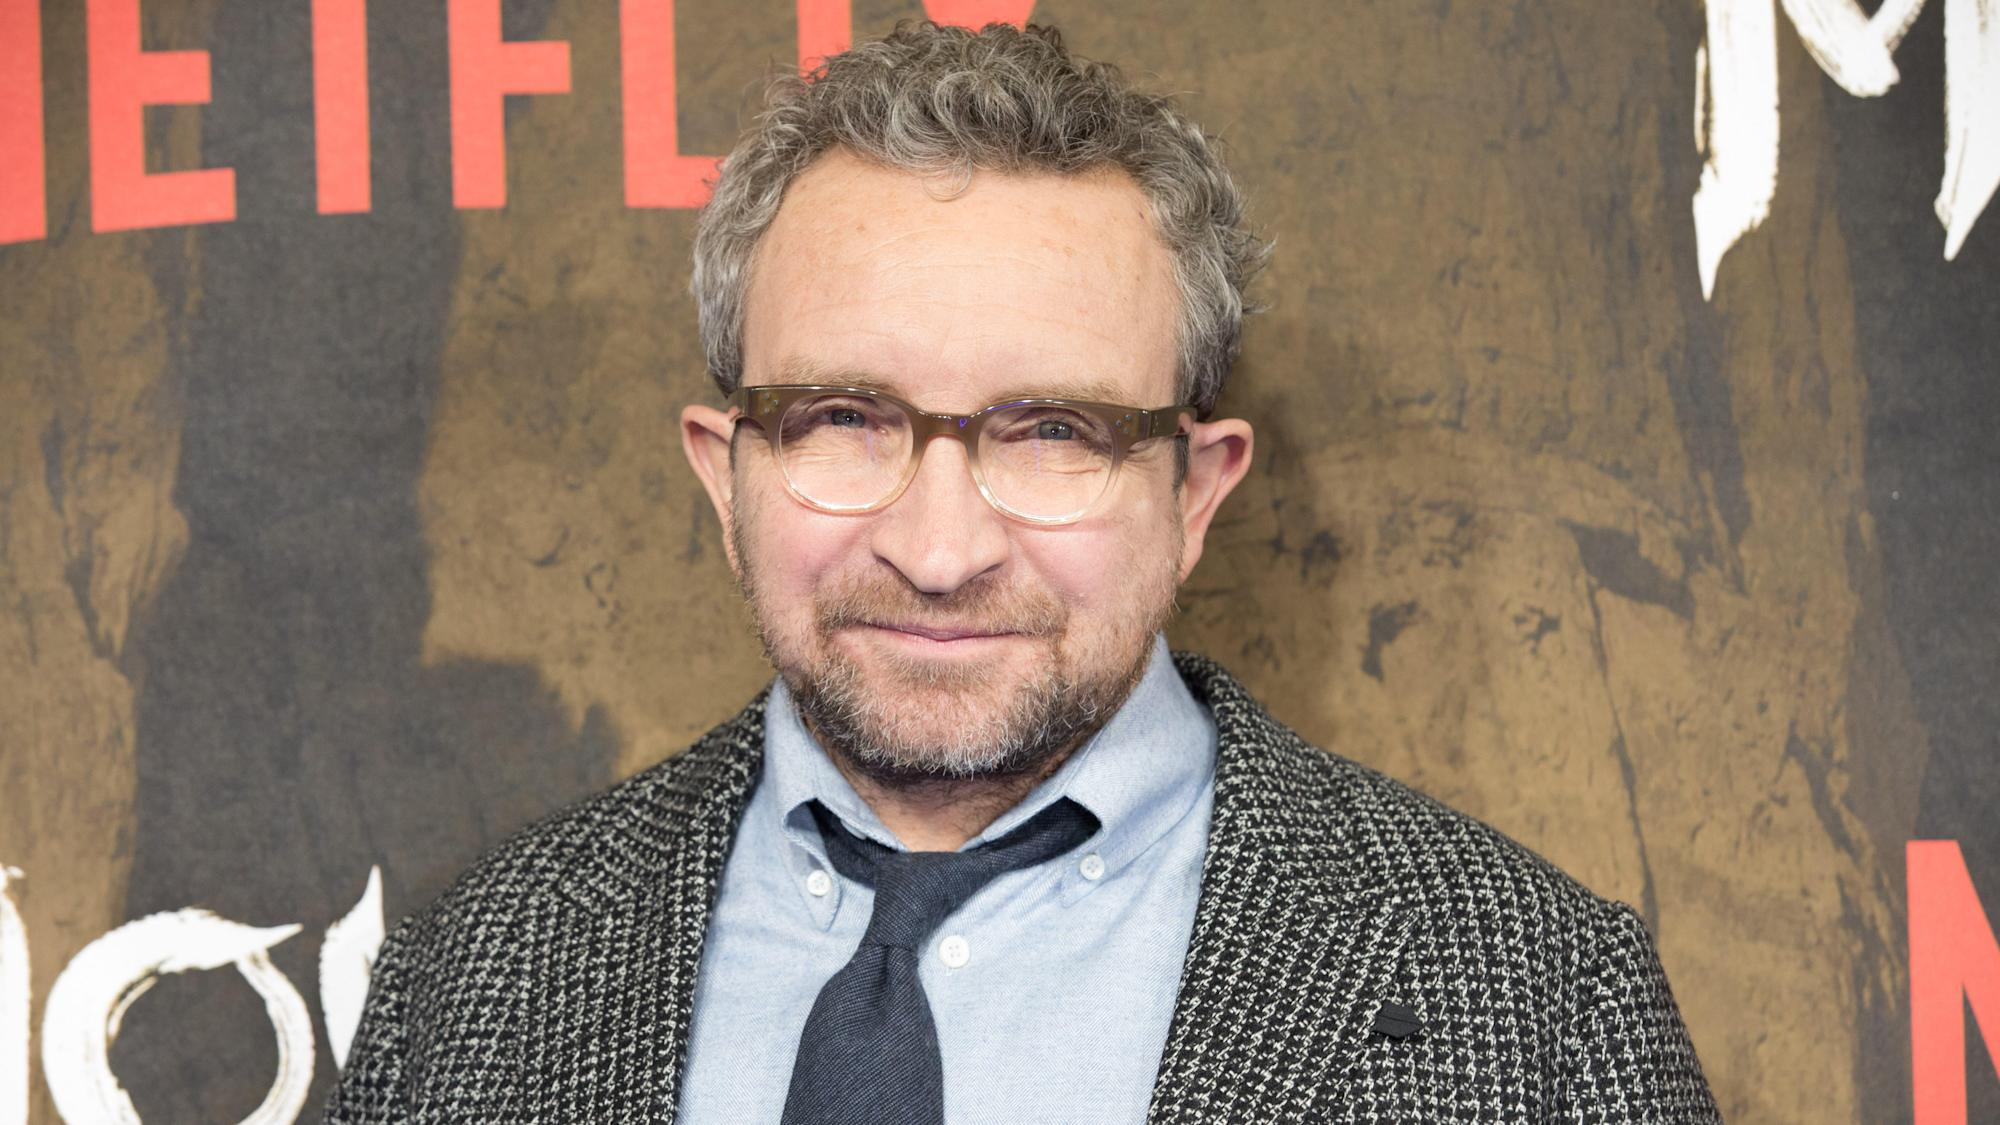 Eddie Marsan to play back-from-the-dead canoeist John Darwin in ITV series